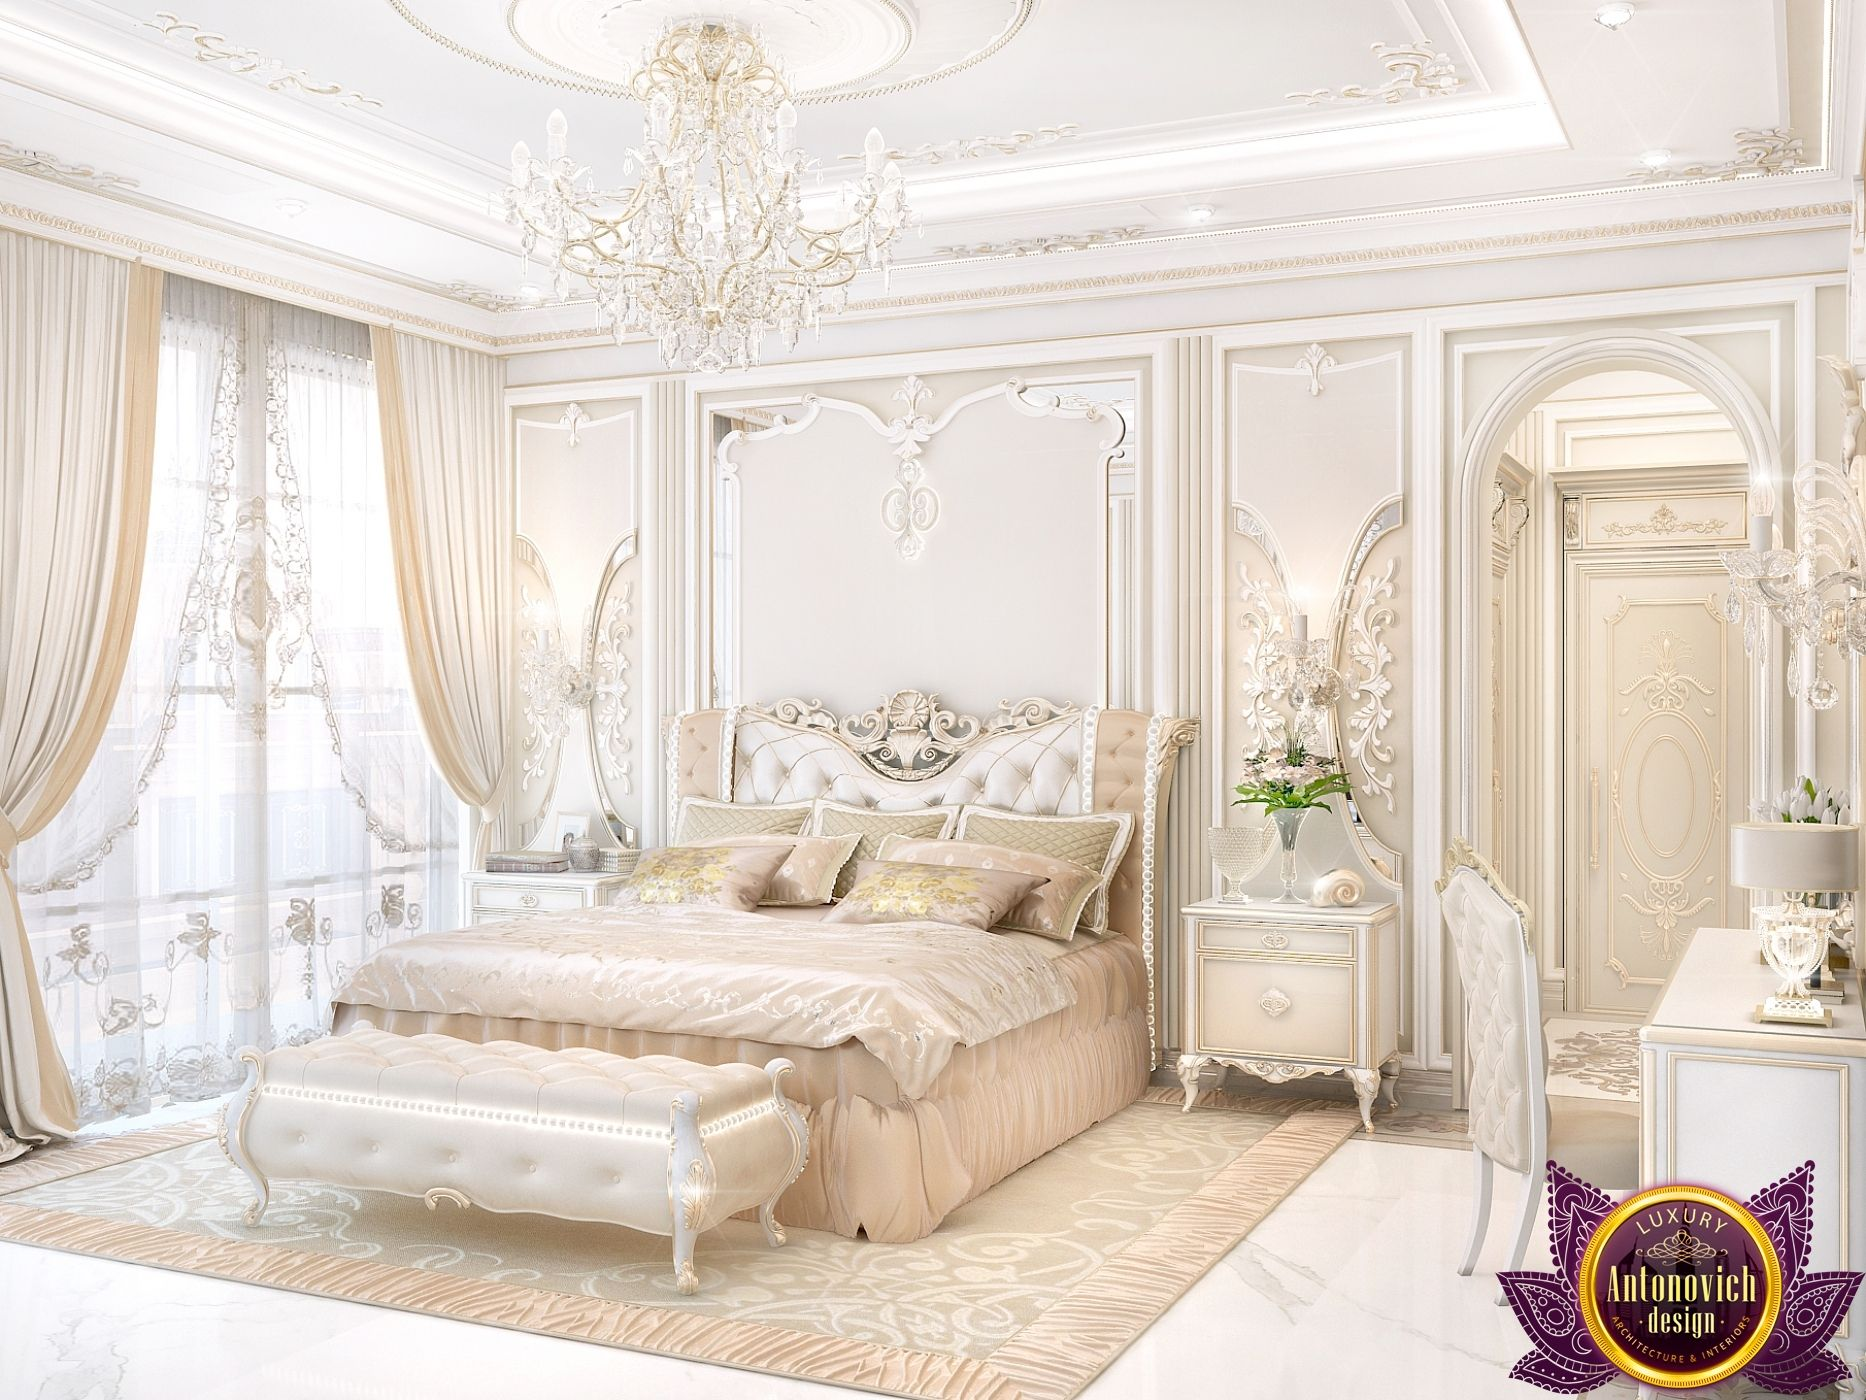 Bedroom Design in a Classic Style